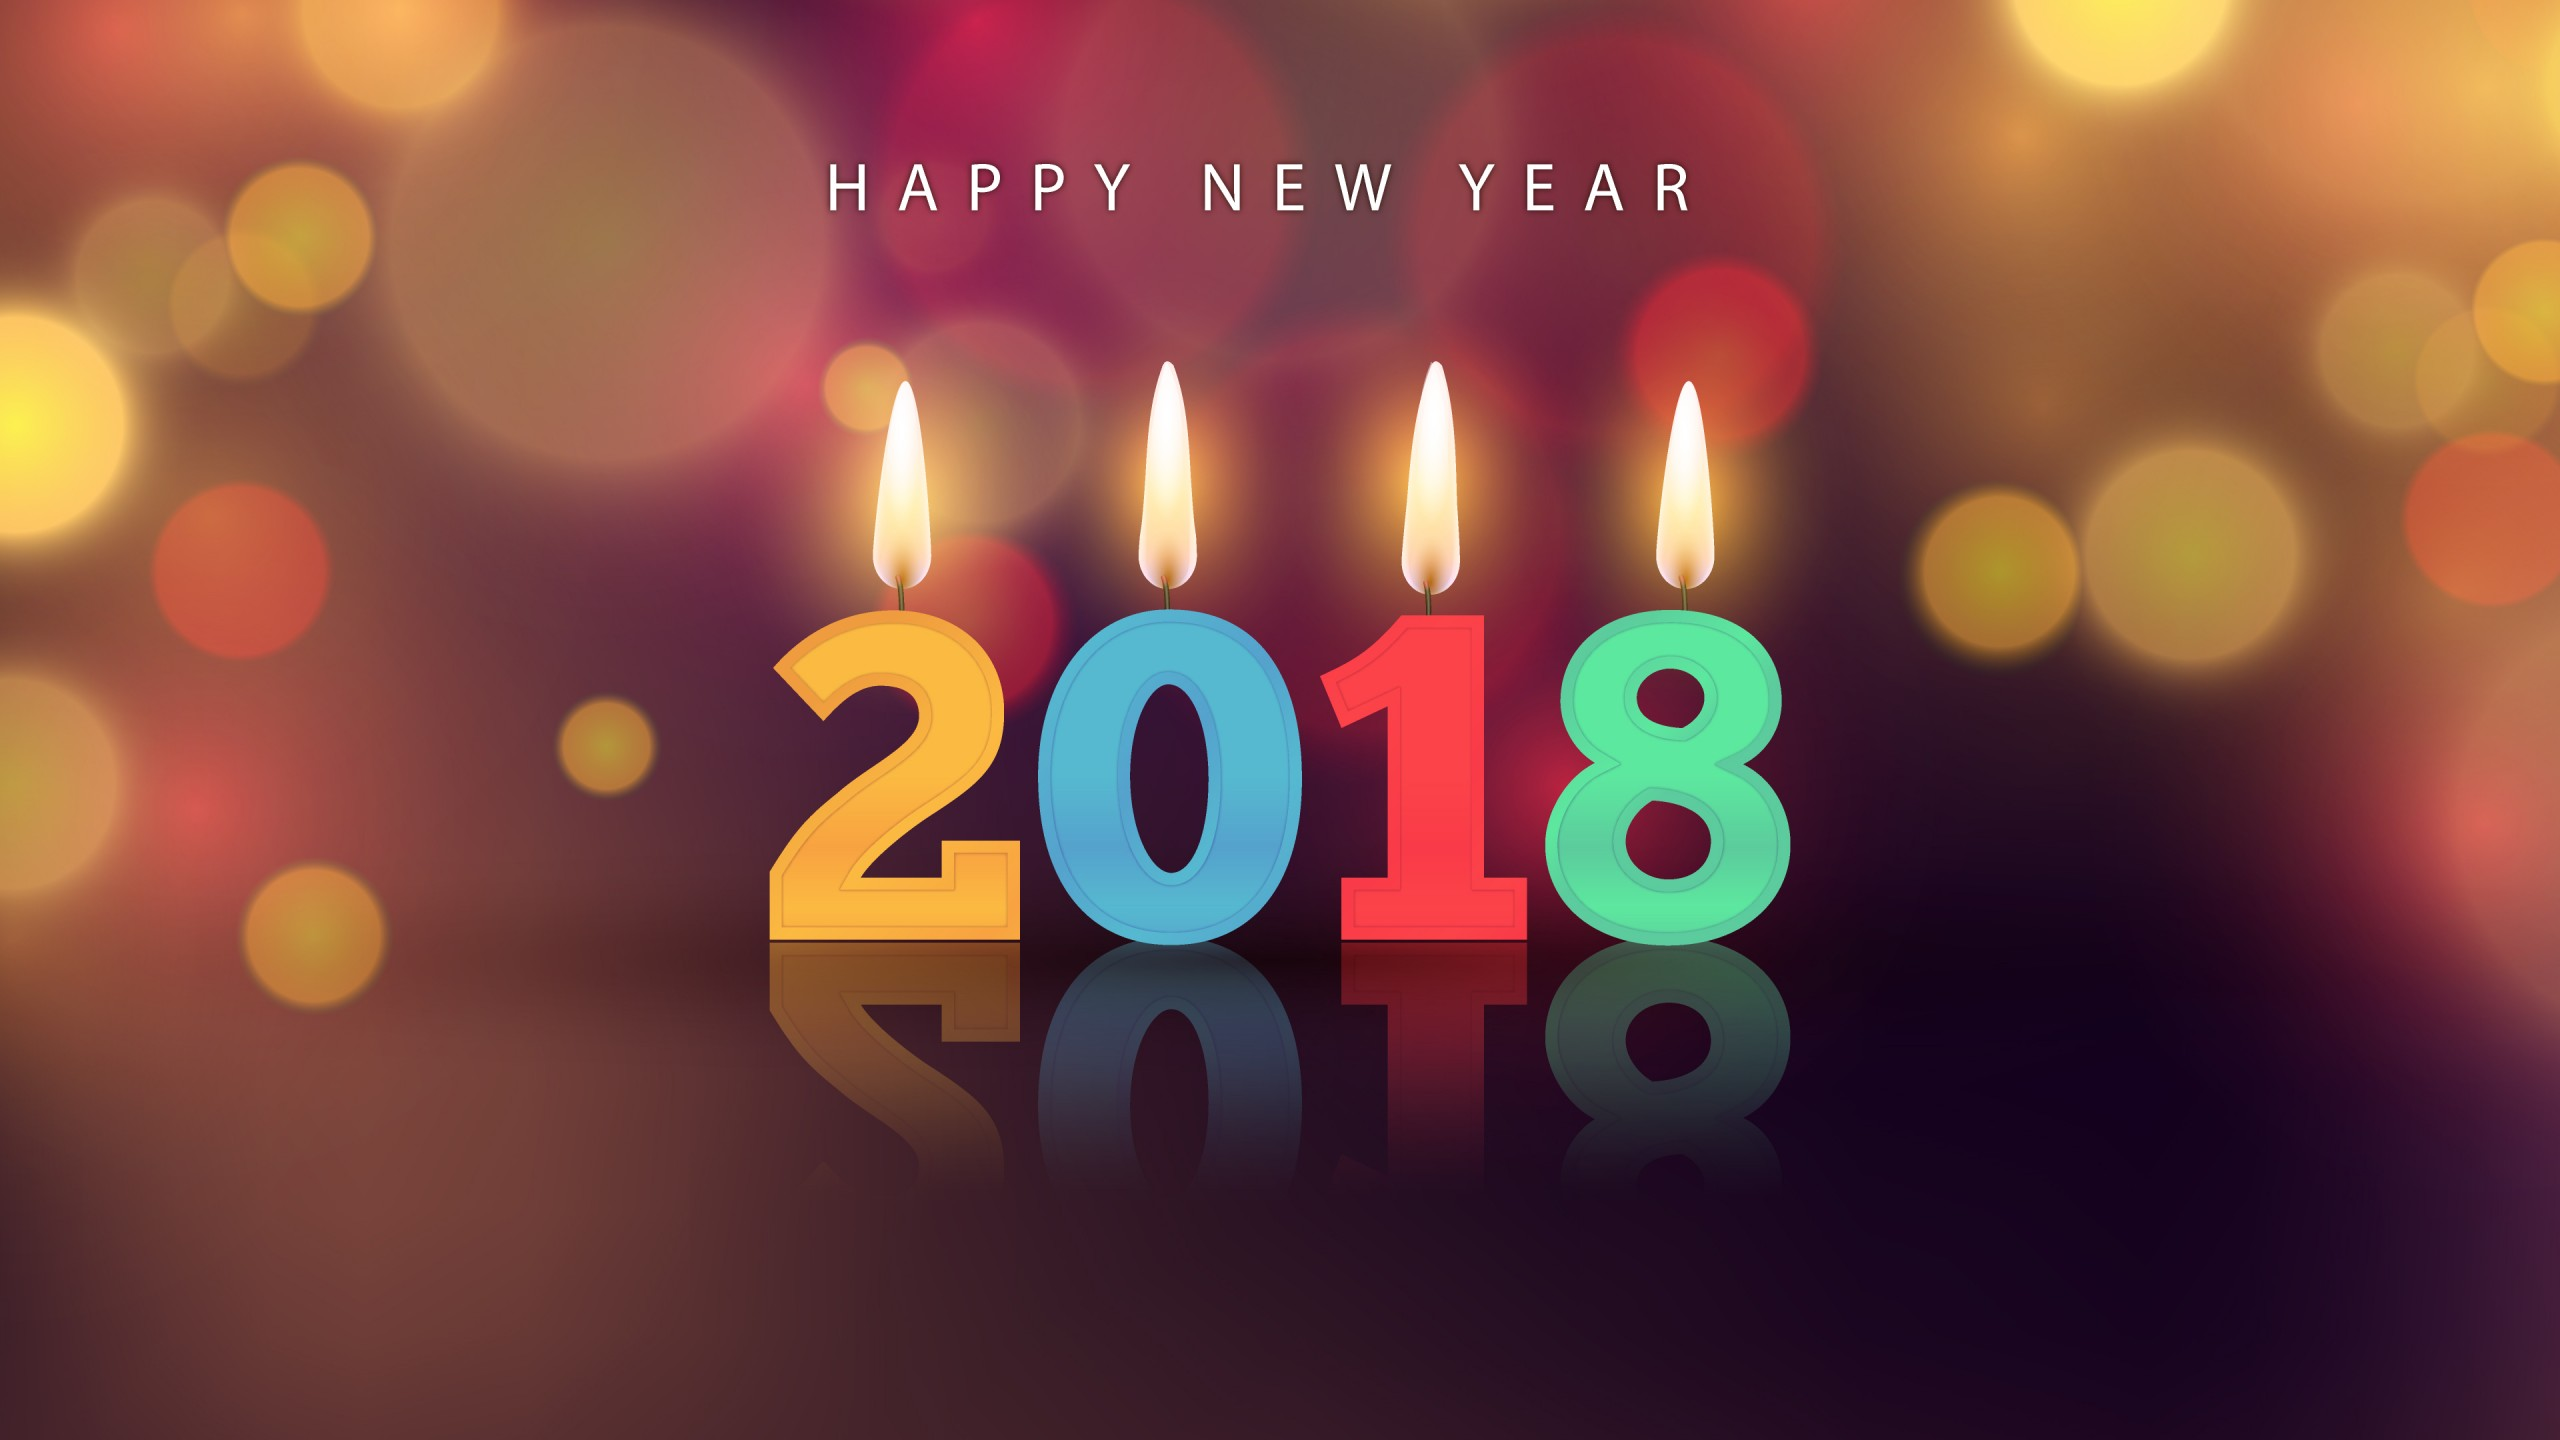 Happy New Year Wallpapers 2018 HD Images